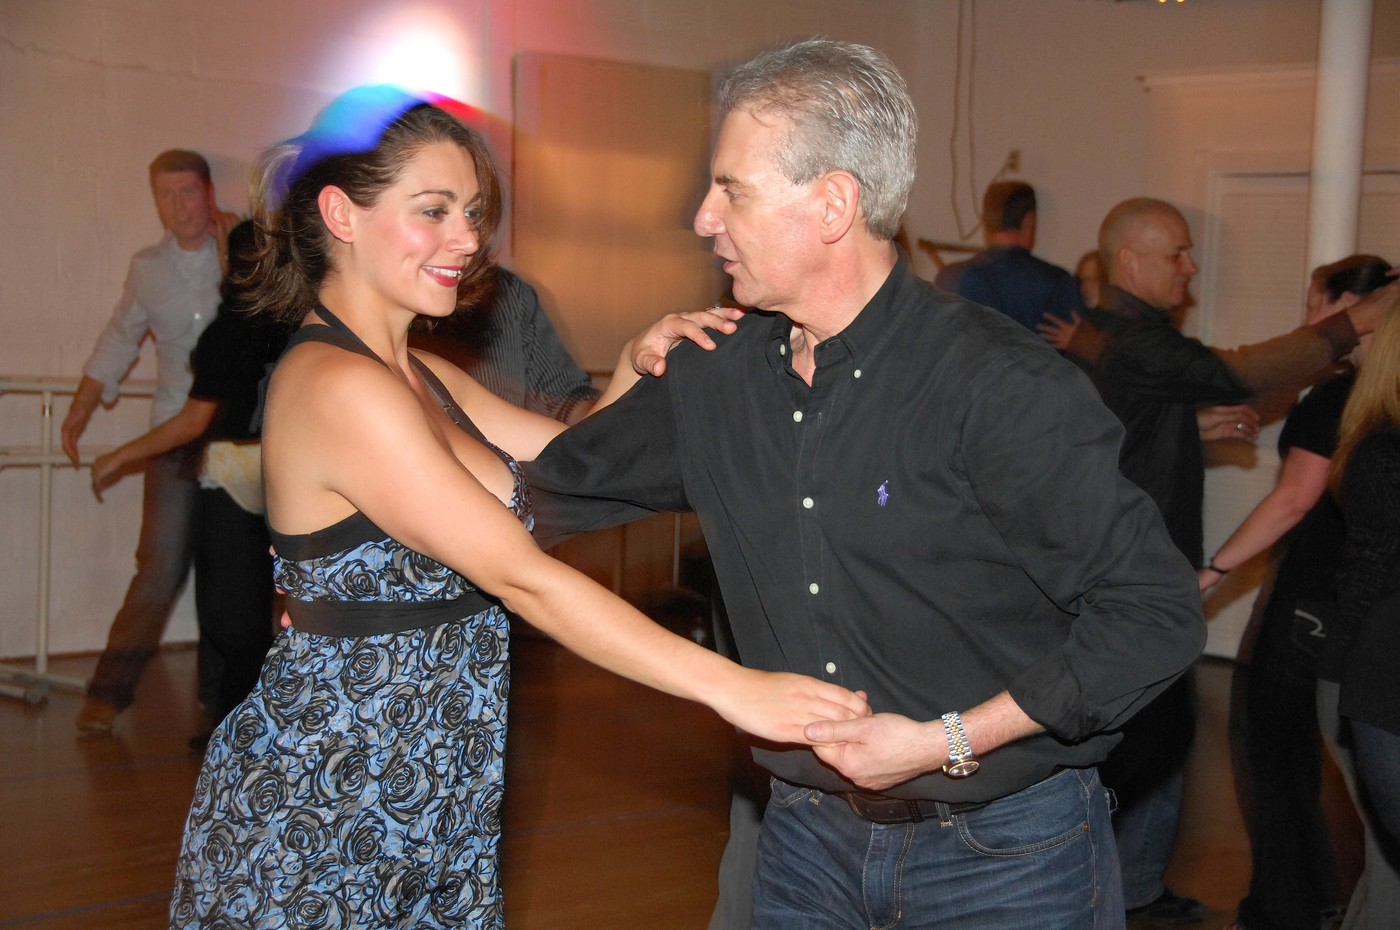 West Coast Swing in Norwalk, CT on Feb 16, 2012